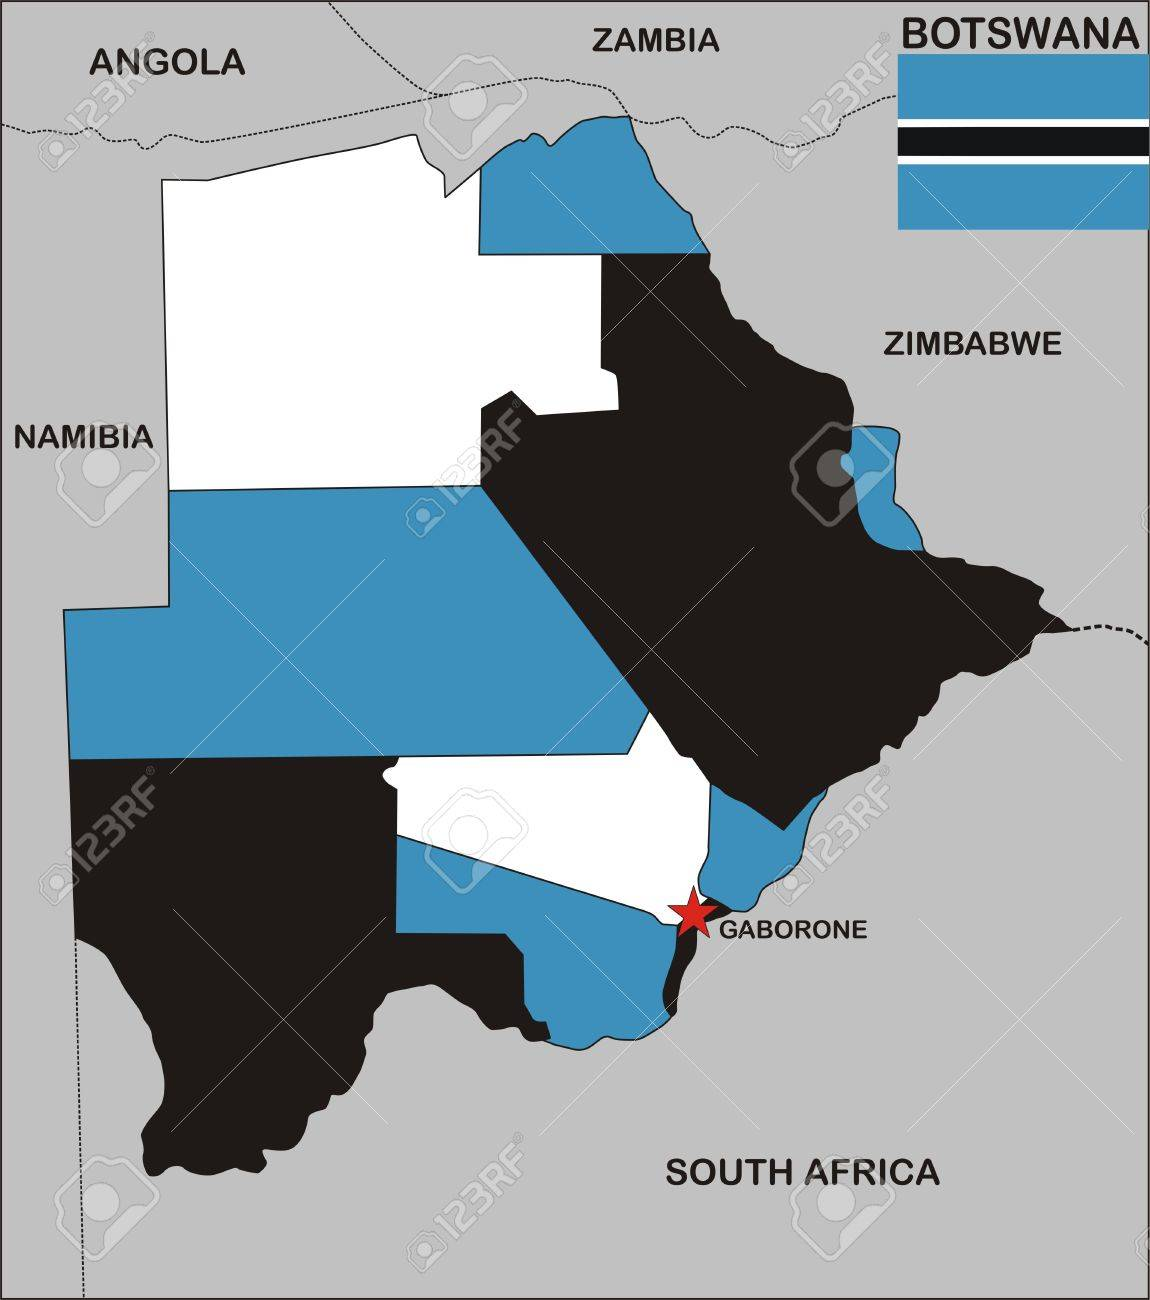 Botswana Political Map.Political Map Of Botswana Country With Flag Illustration Stock Photo